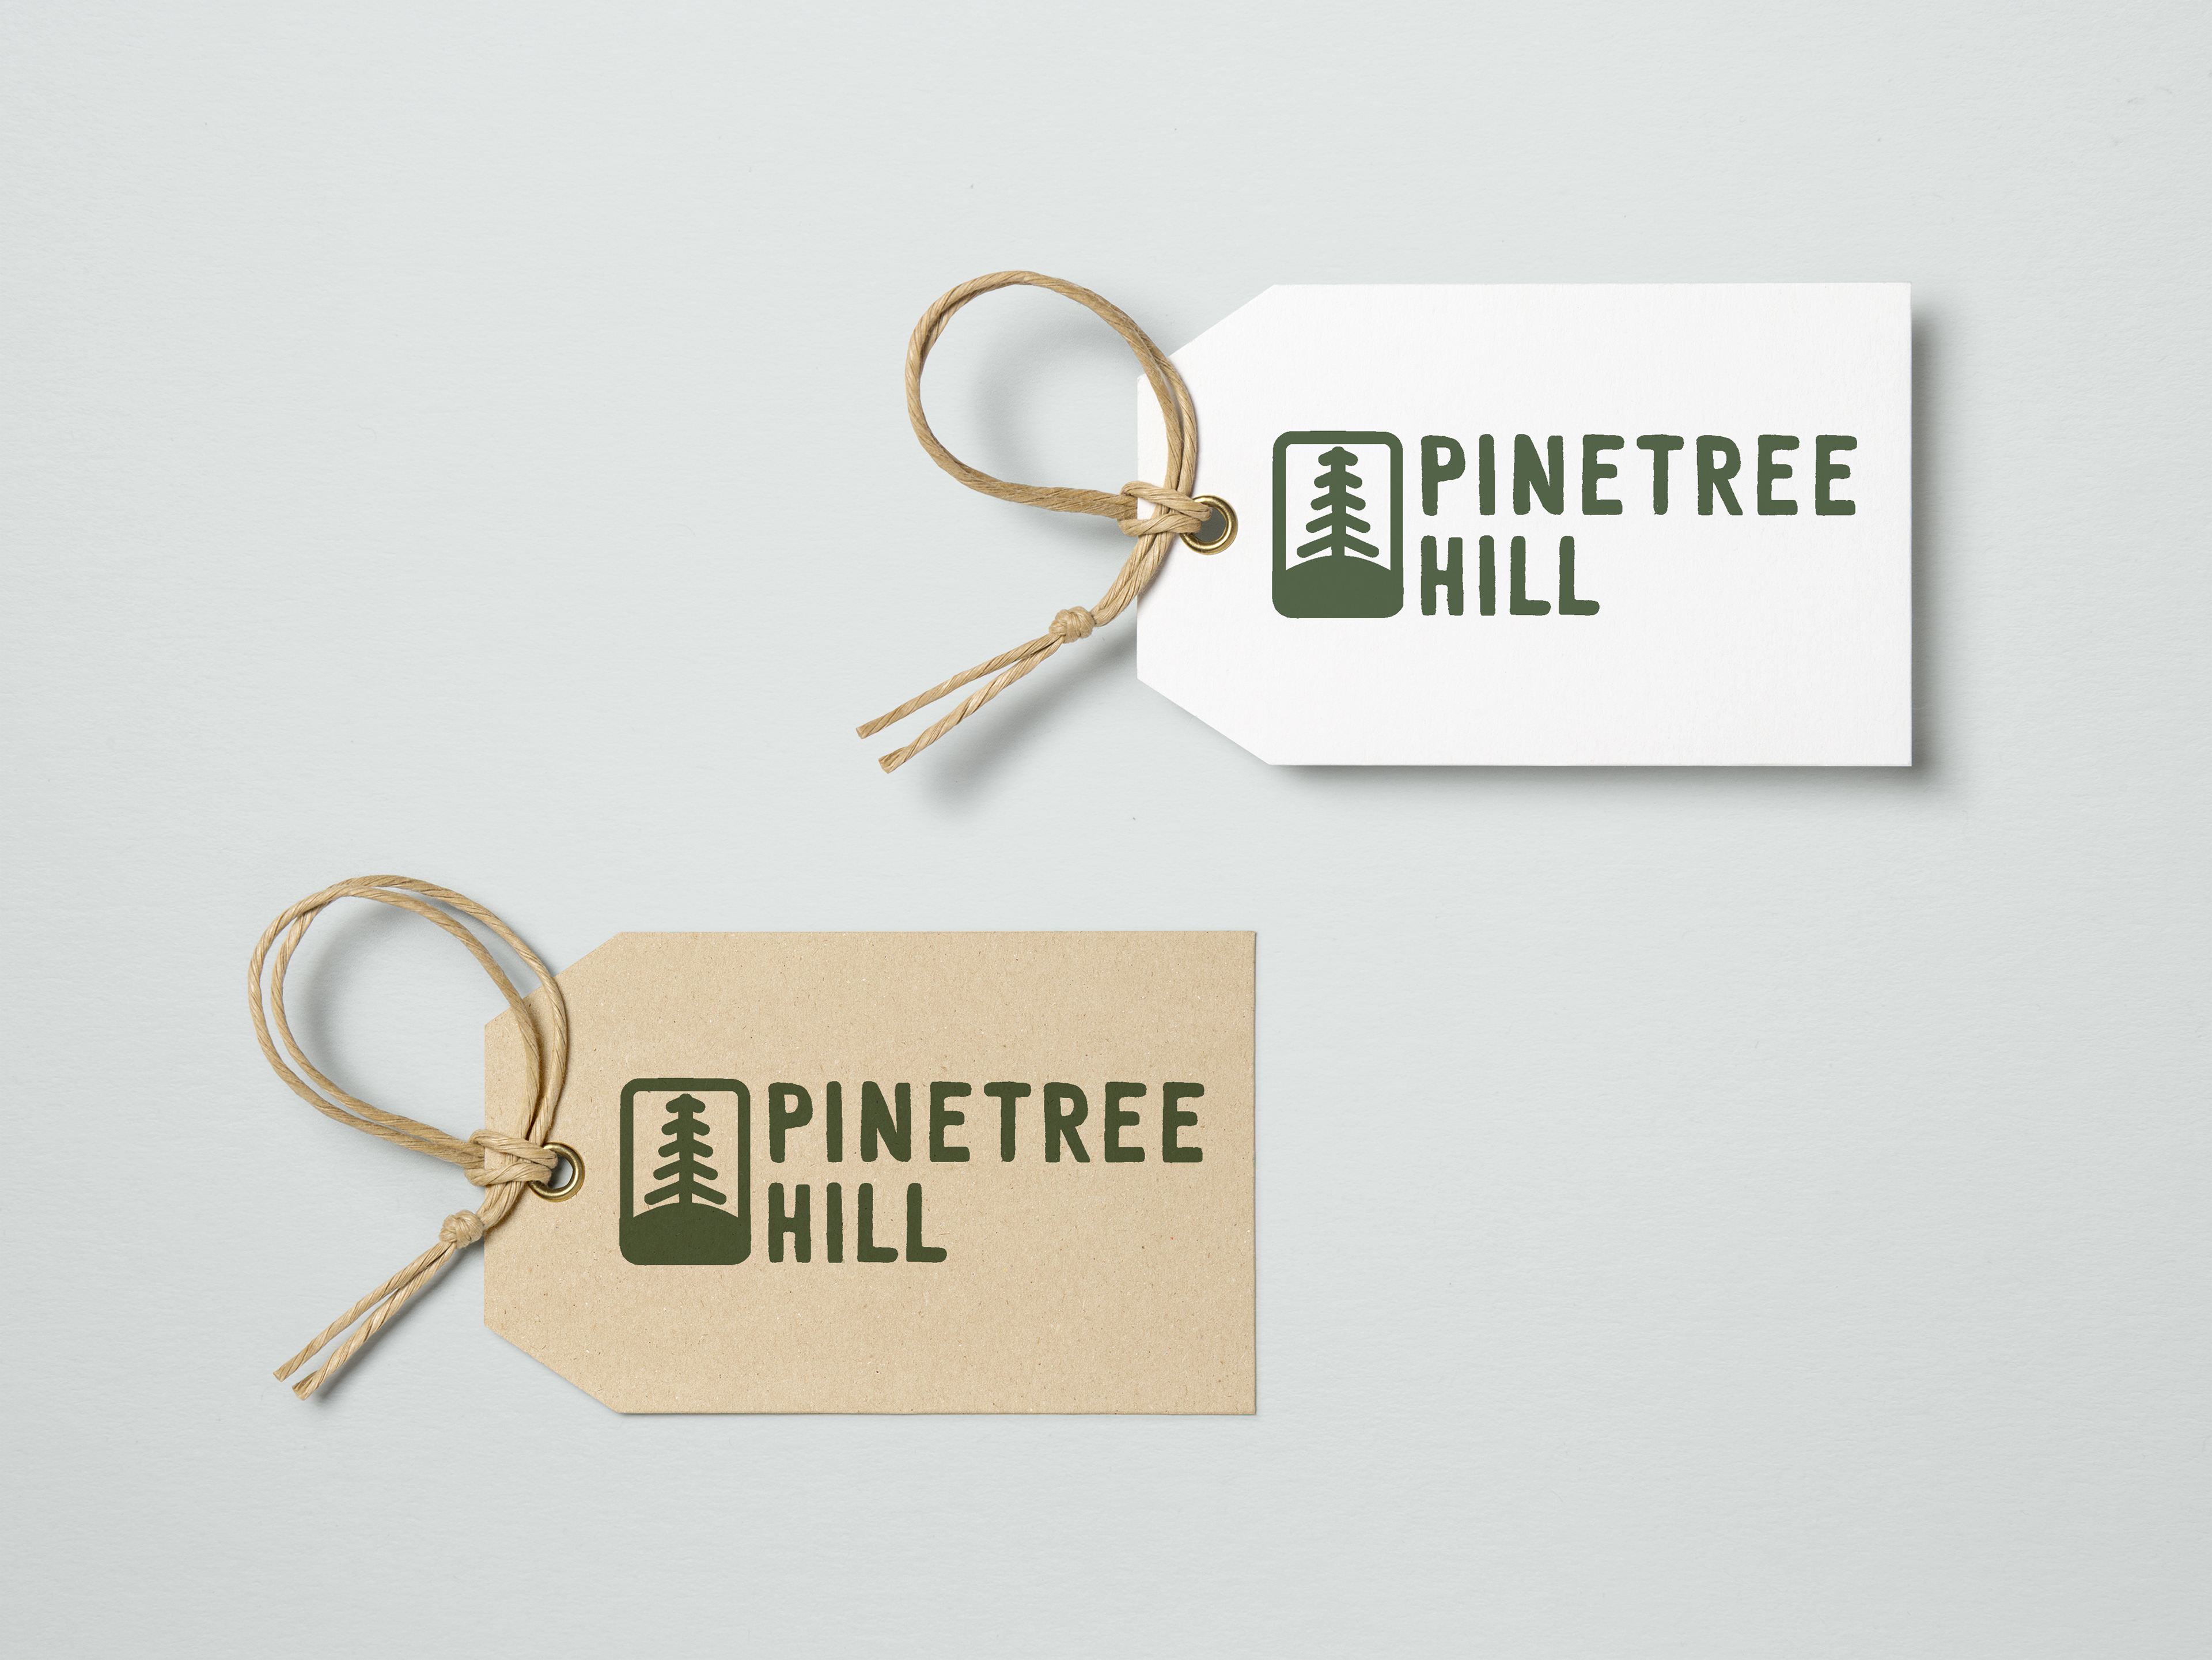 19th Frame - Pinetree Hill